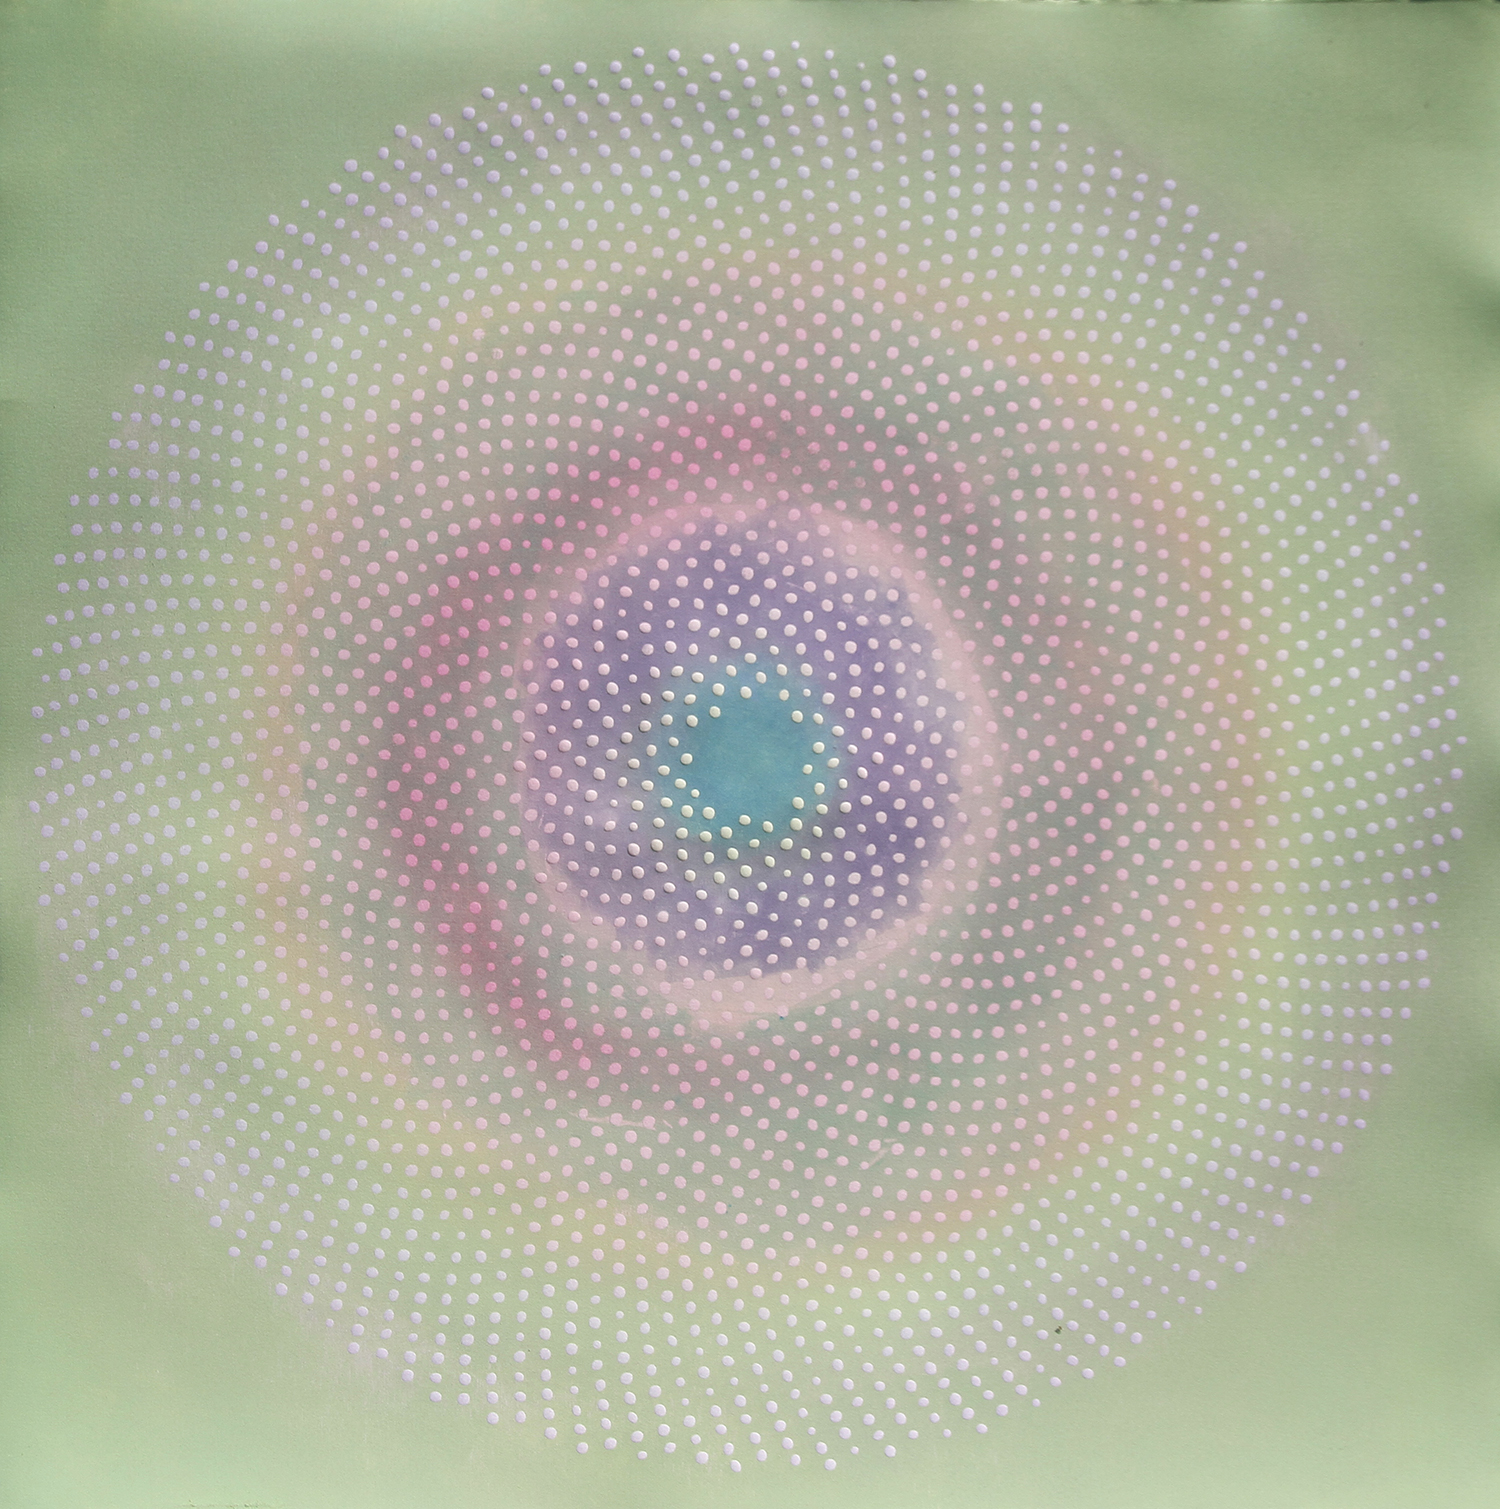 Phyllotaxis 21